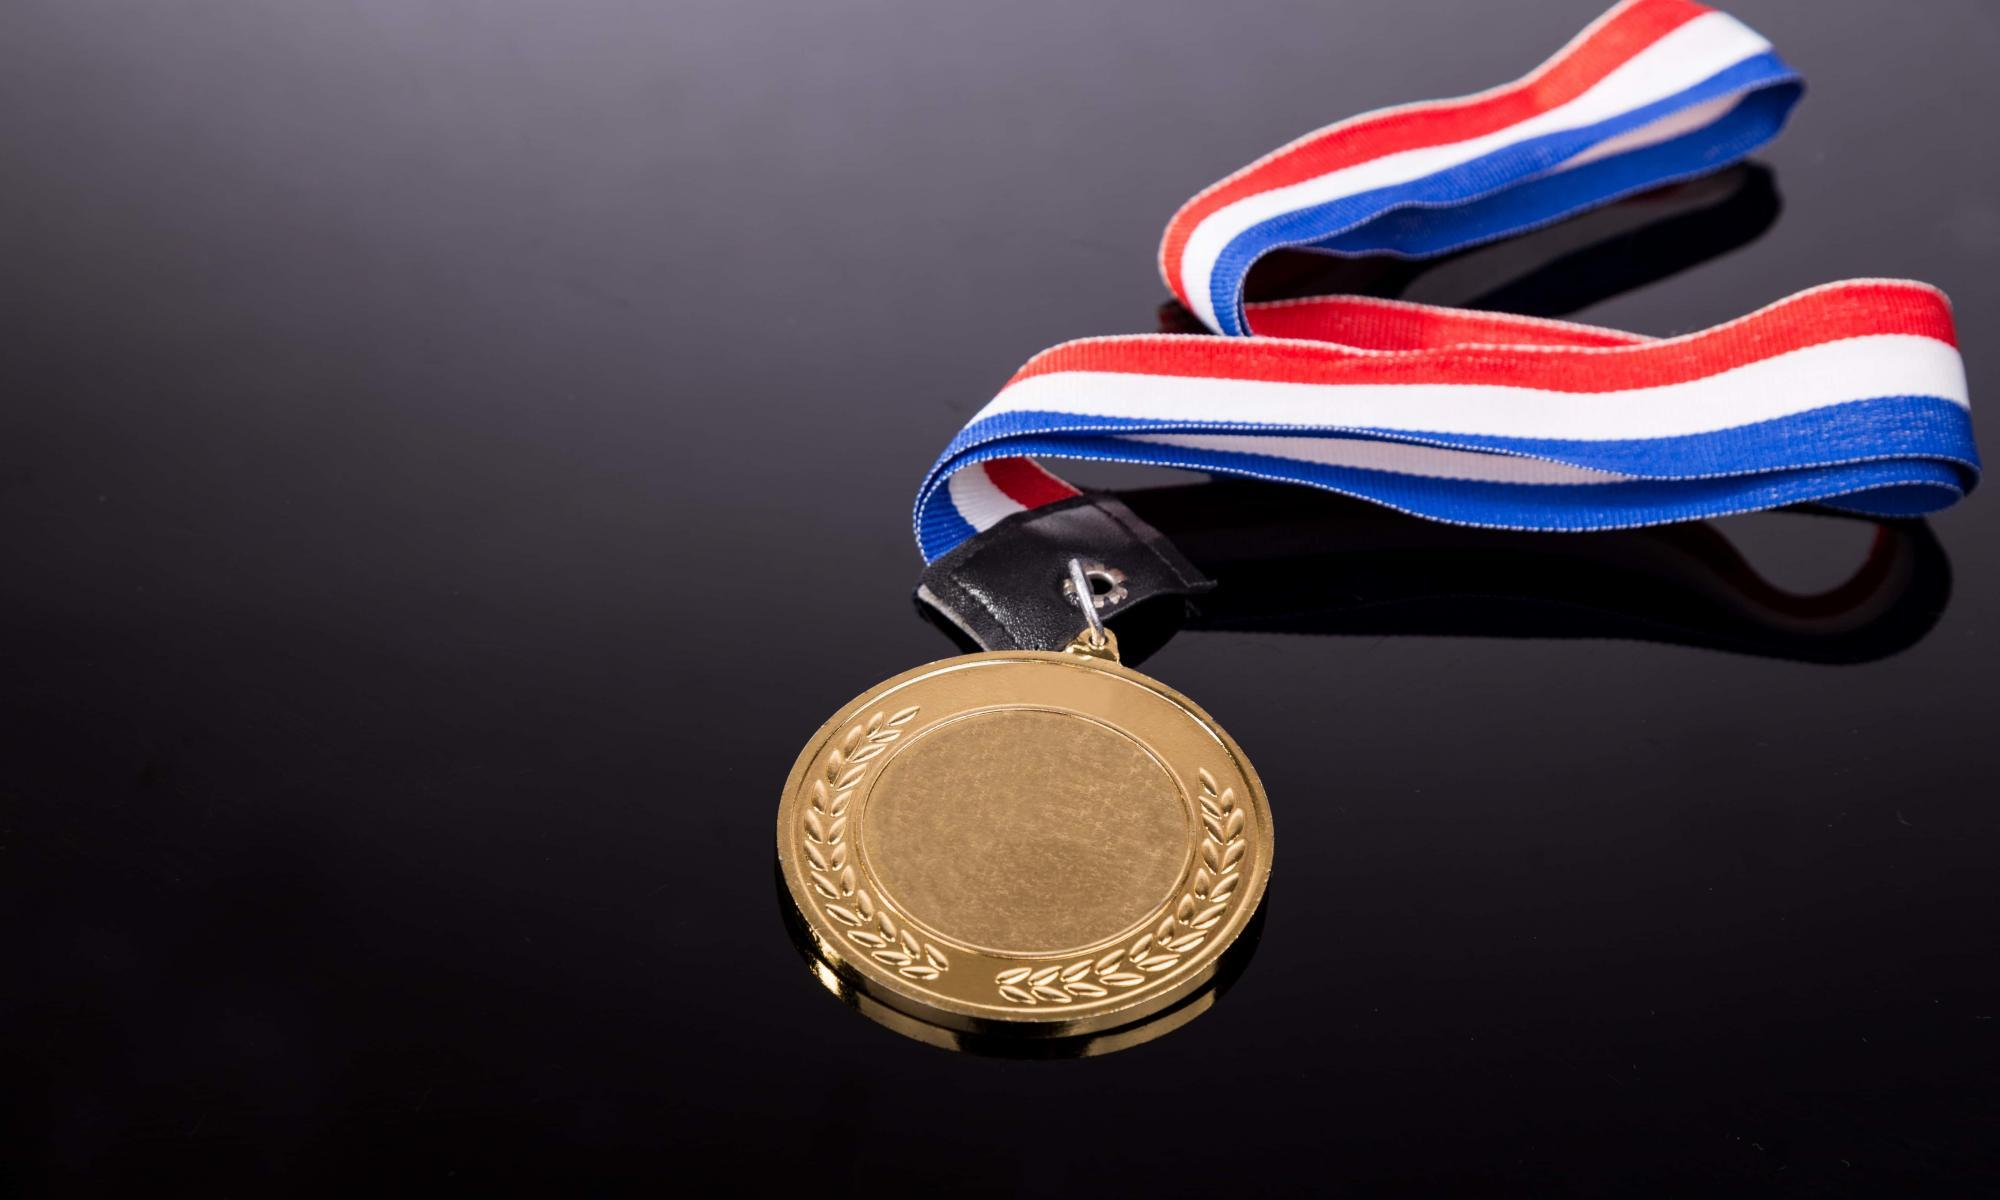 generic-sporting-event-gold-medal-with-red-and-P725MK7-min